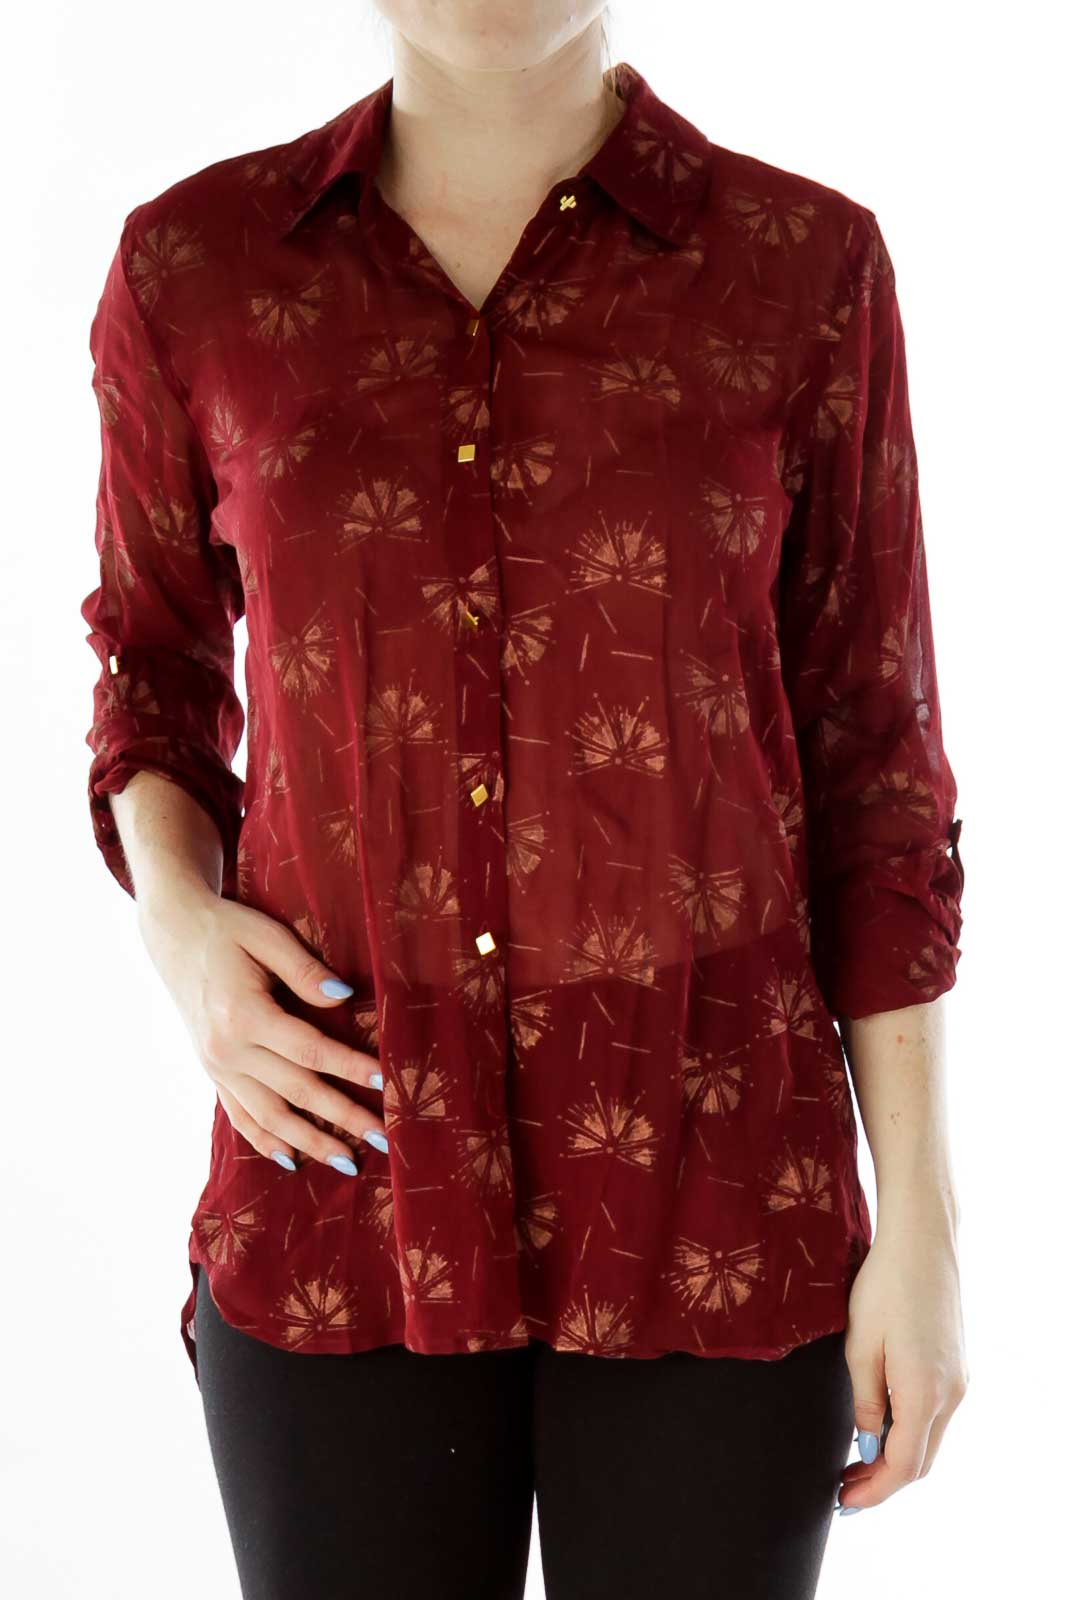 Red Beige See-Through Dancing-Fan Print Button Down Front